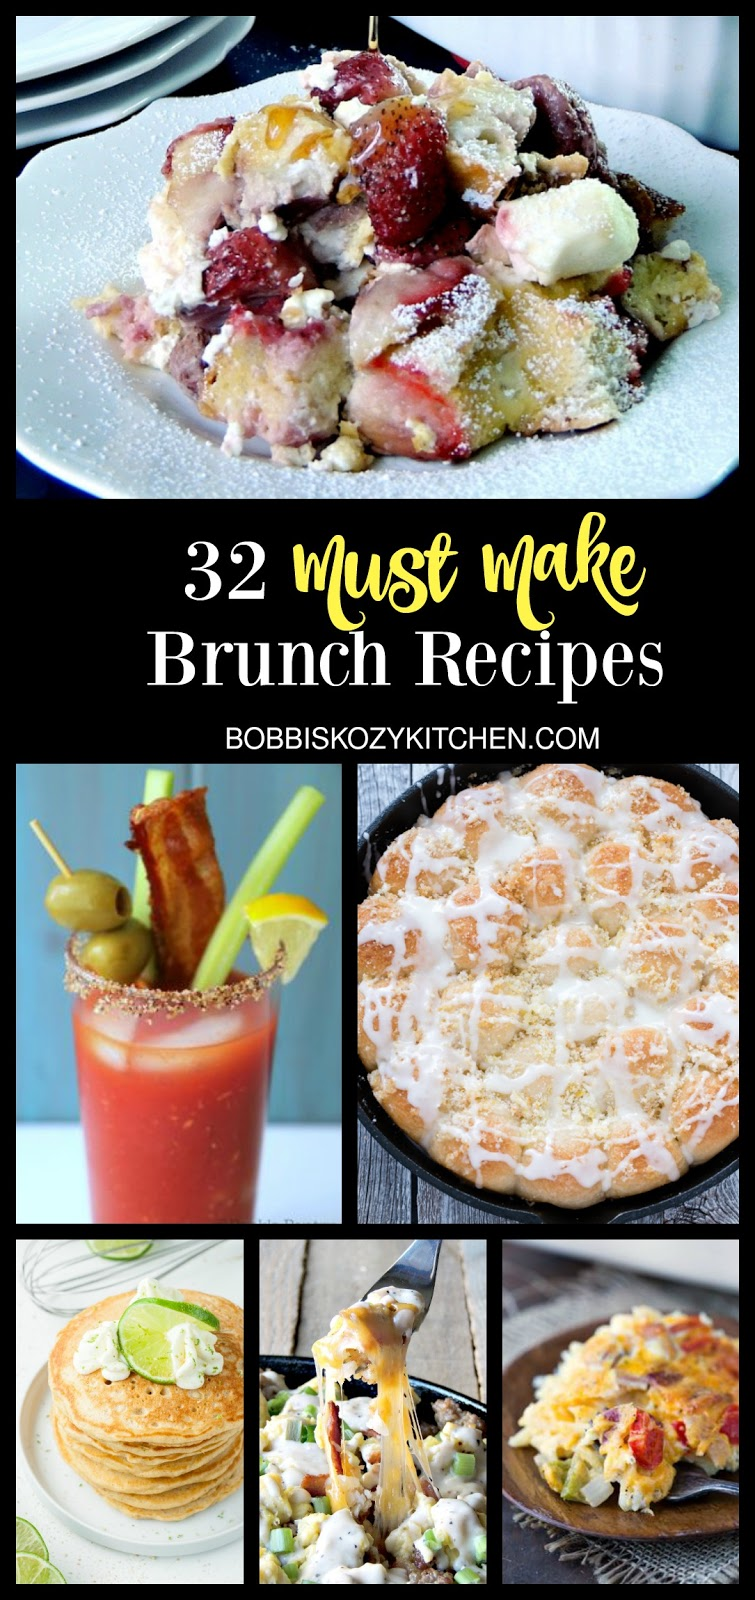 These are 32 delicious, must make recipes for Mother's day, or any day brunch. From www.bobbiskozykitchen.com